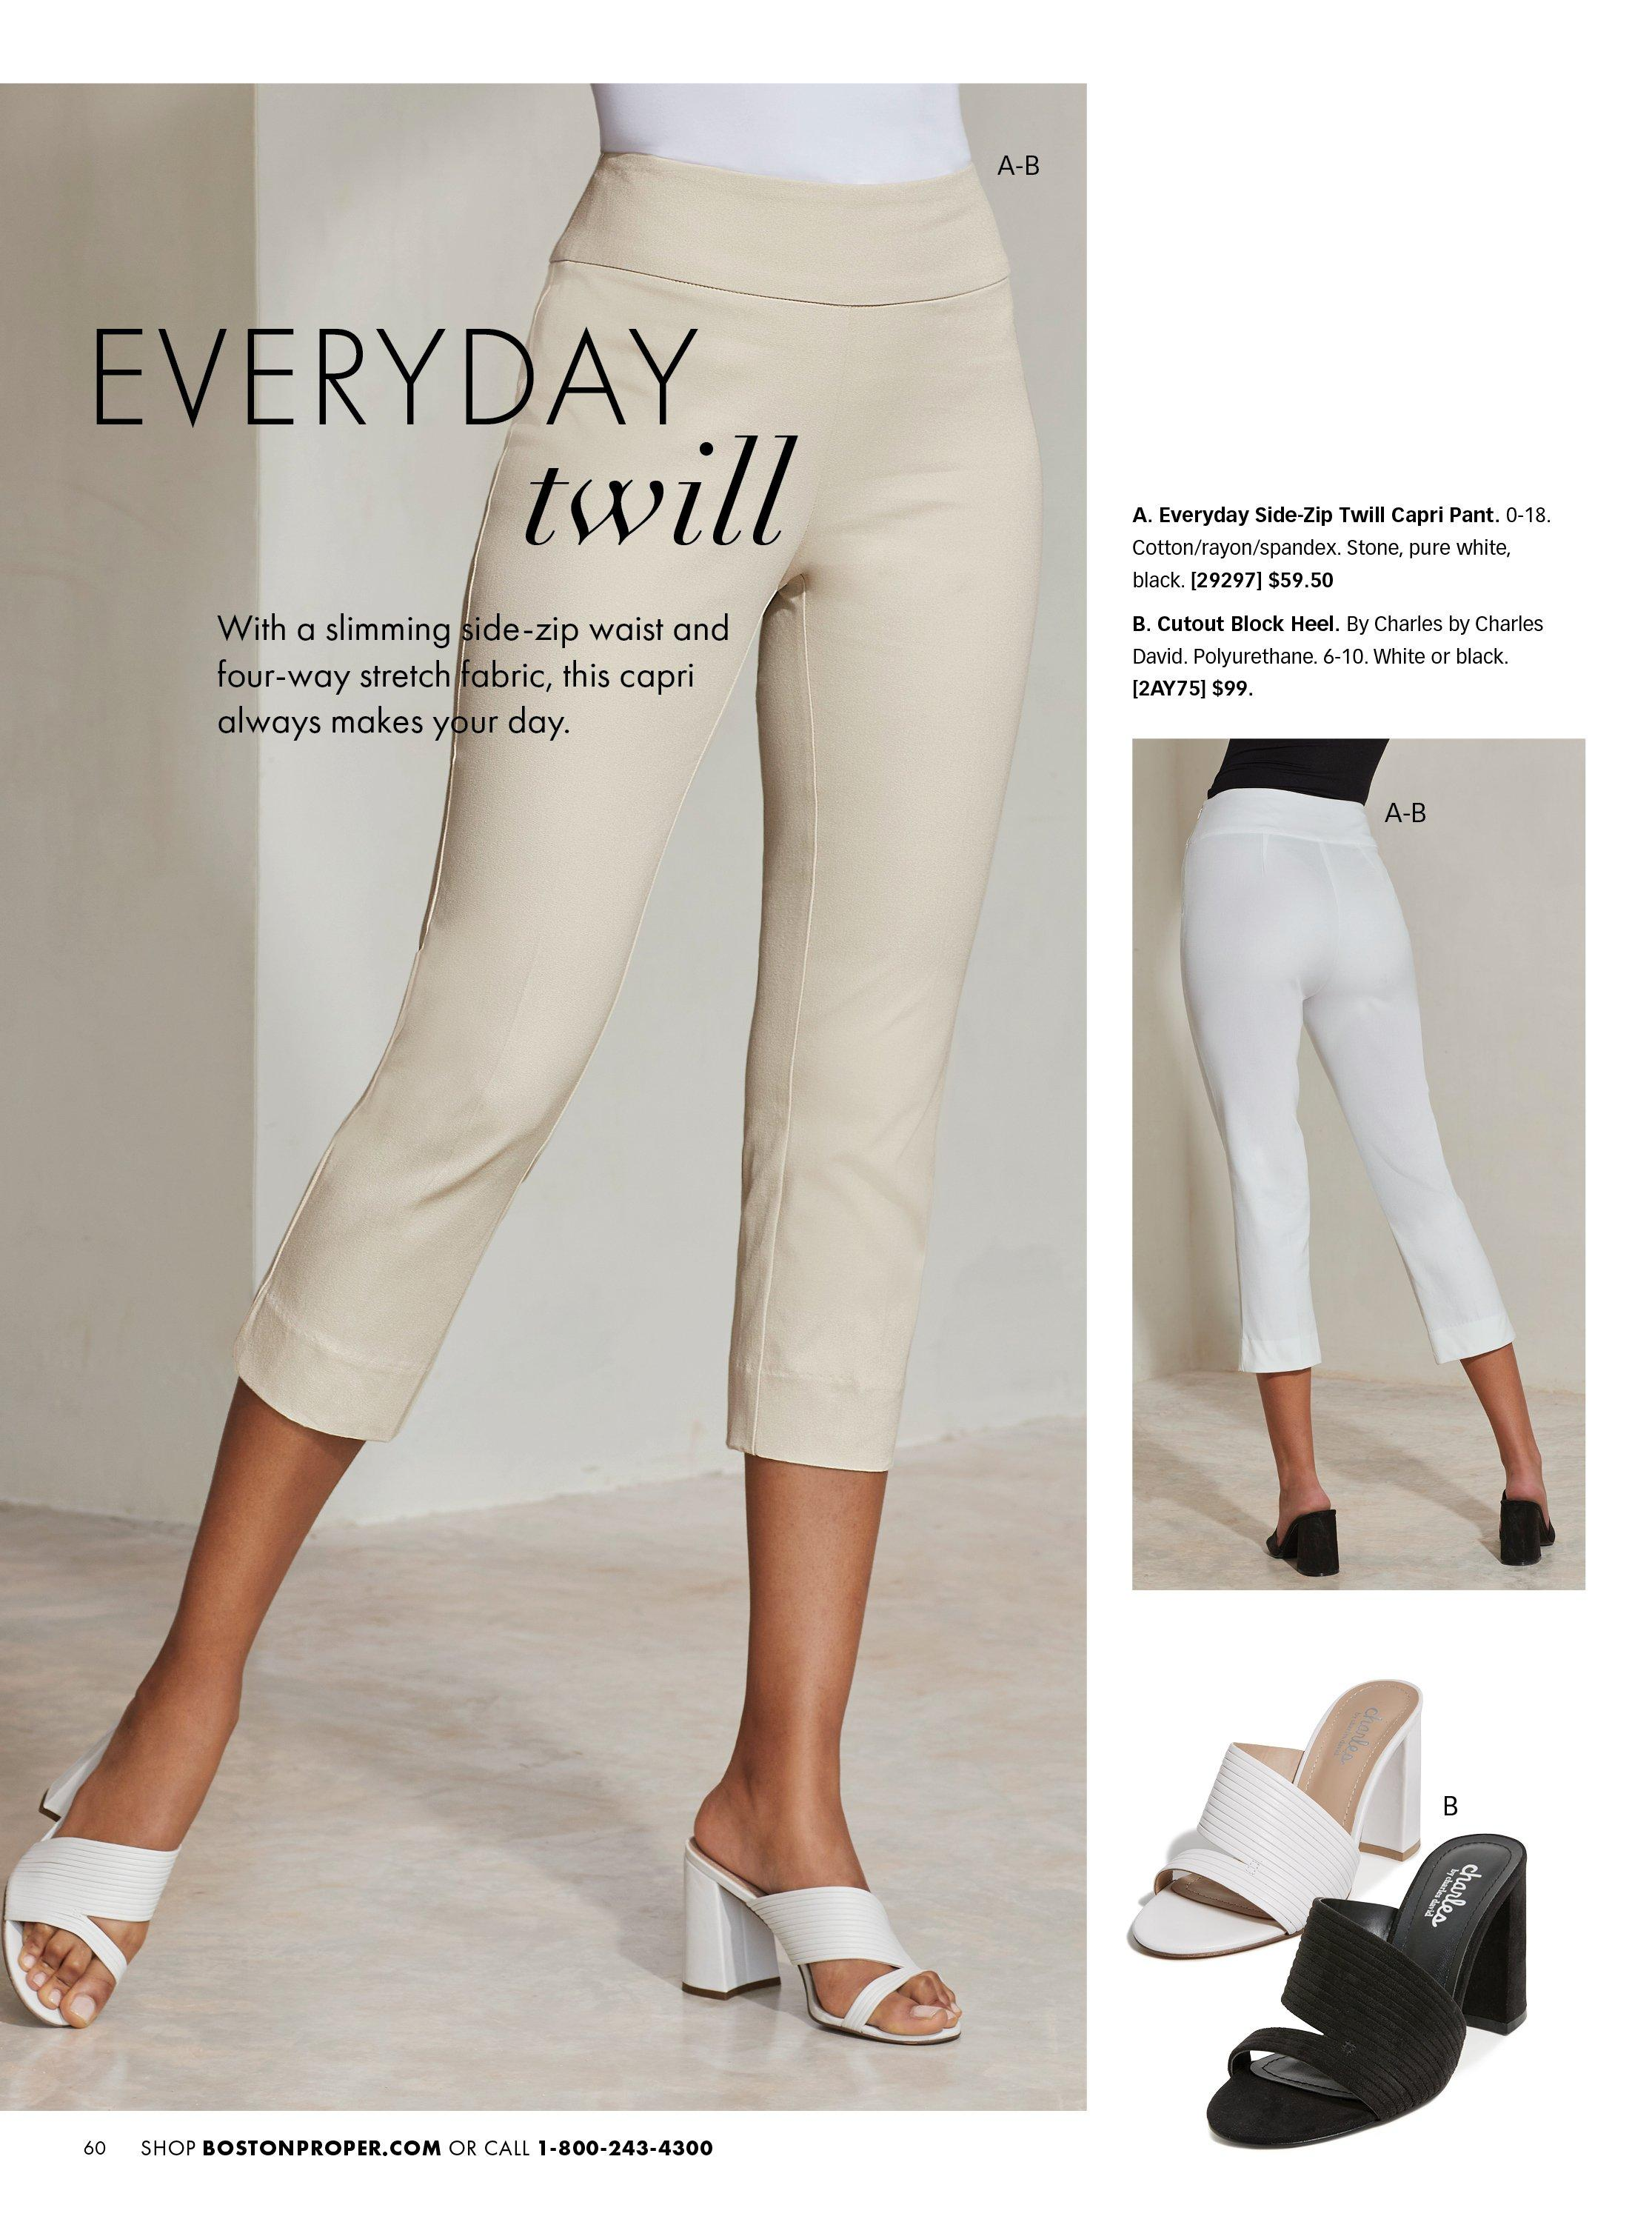 left panel shows twill crop pants in tan and white block heel slides. right panel shows the same pants in white and shoes in black. also shown: block heel slide in black and white.